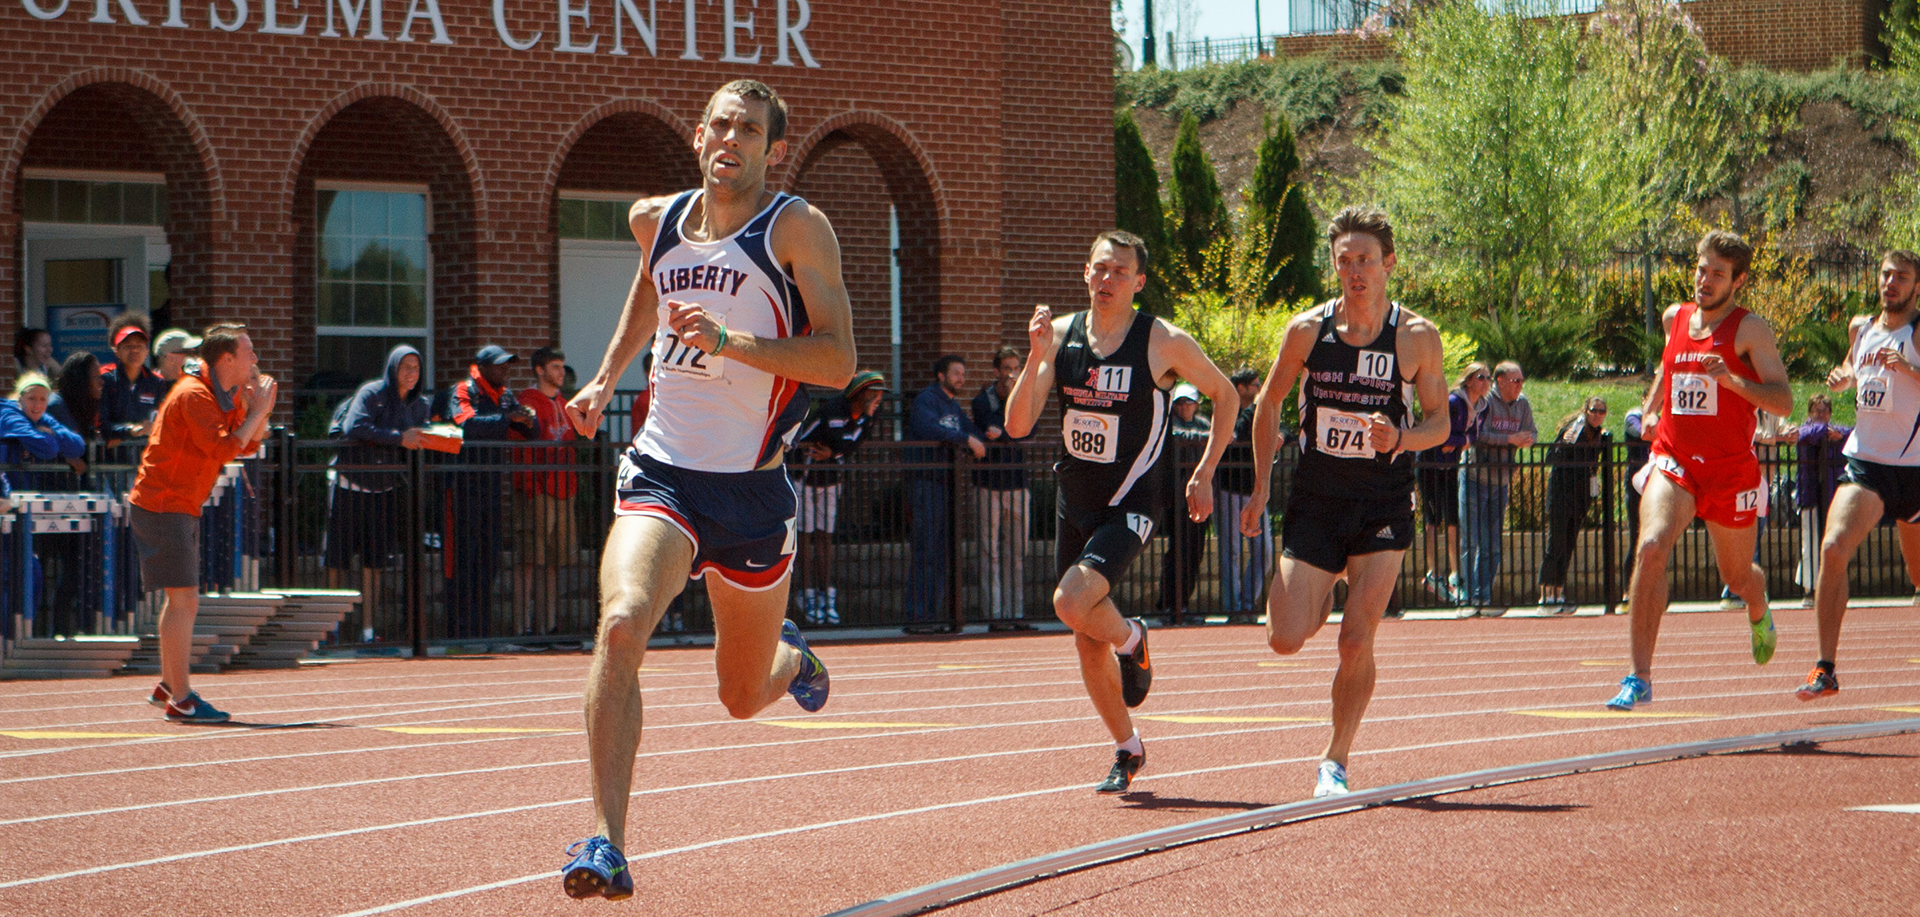 Isaac Wendland, the 2010 Liberty Collegiate Invitational champion in the men's 1,500, will compete in the men's 800-meter run on Saturday.